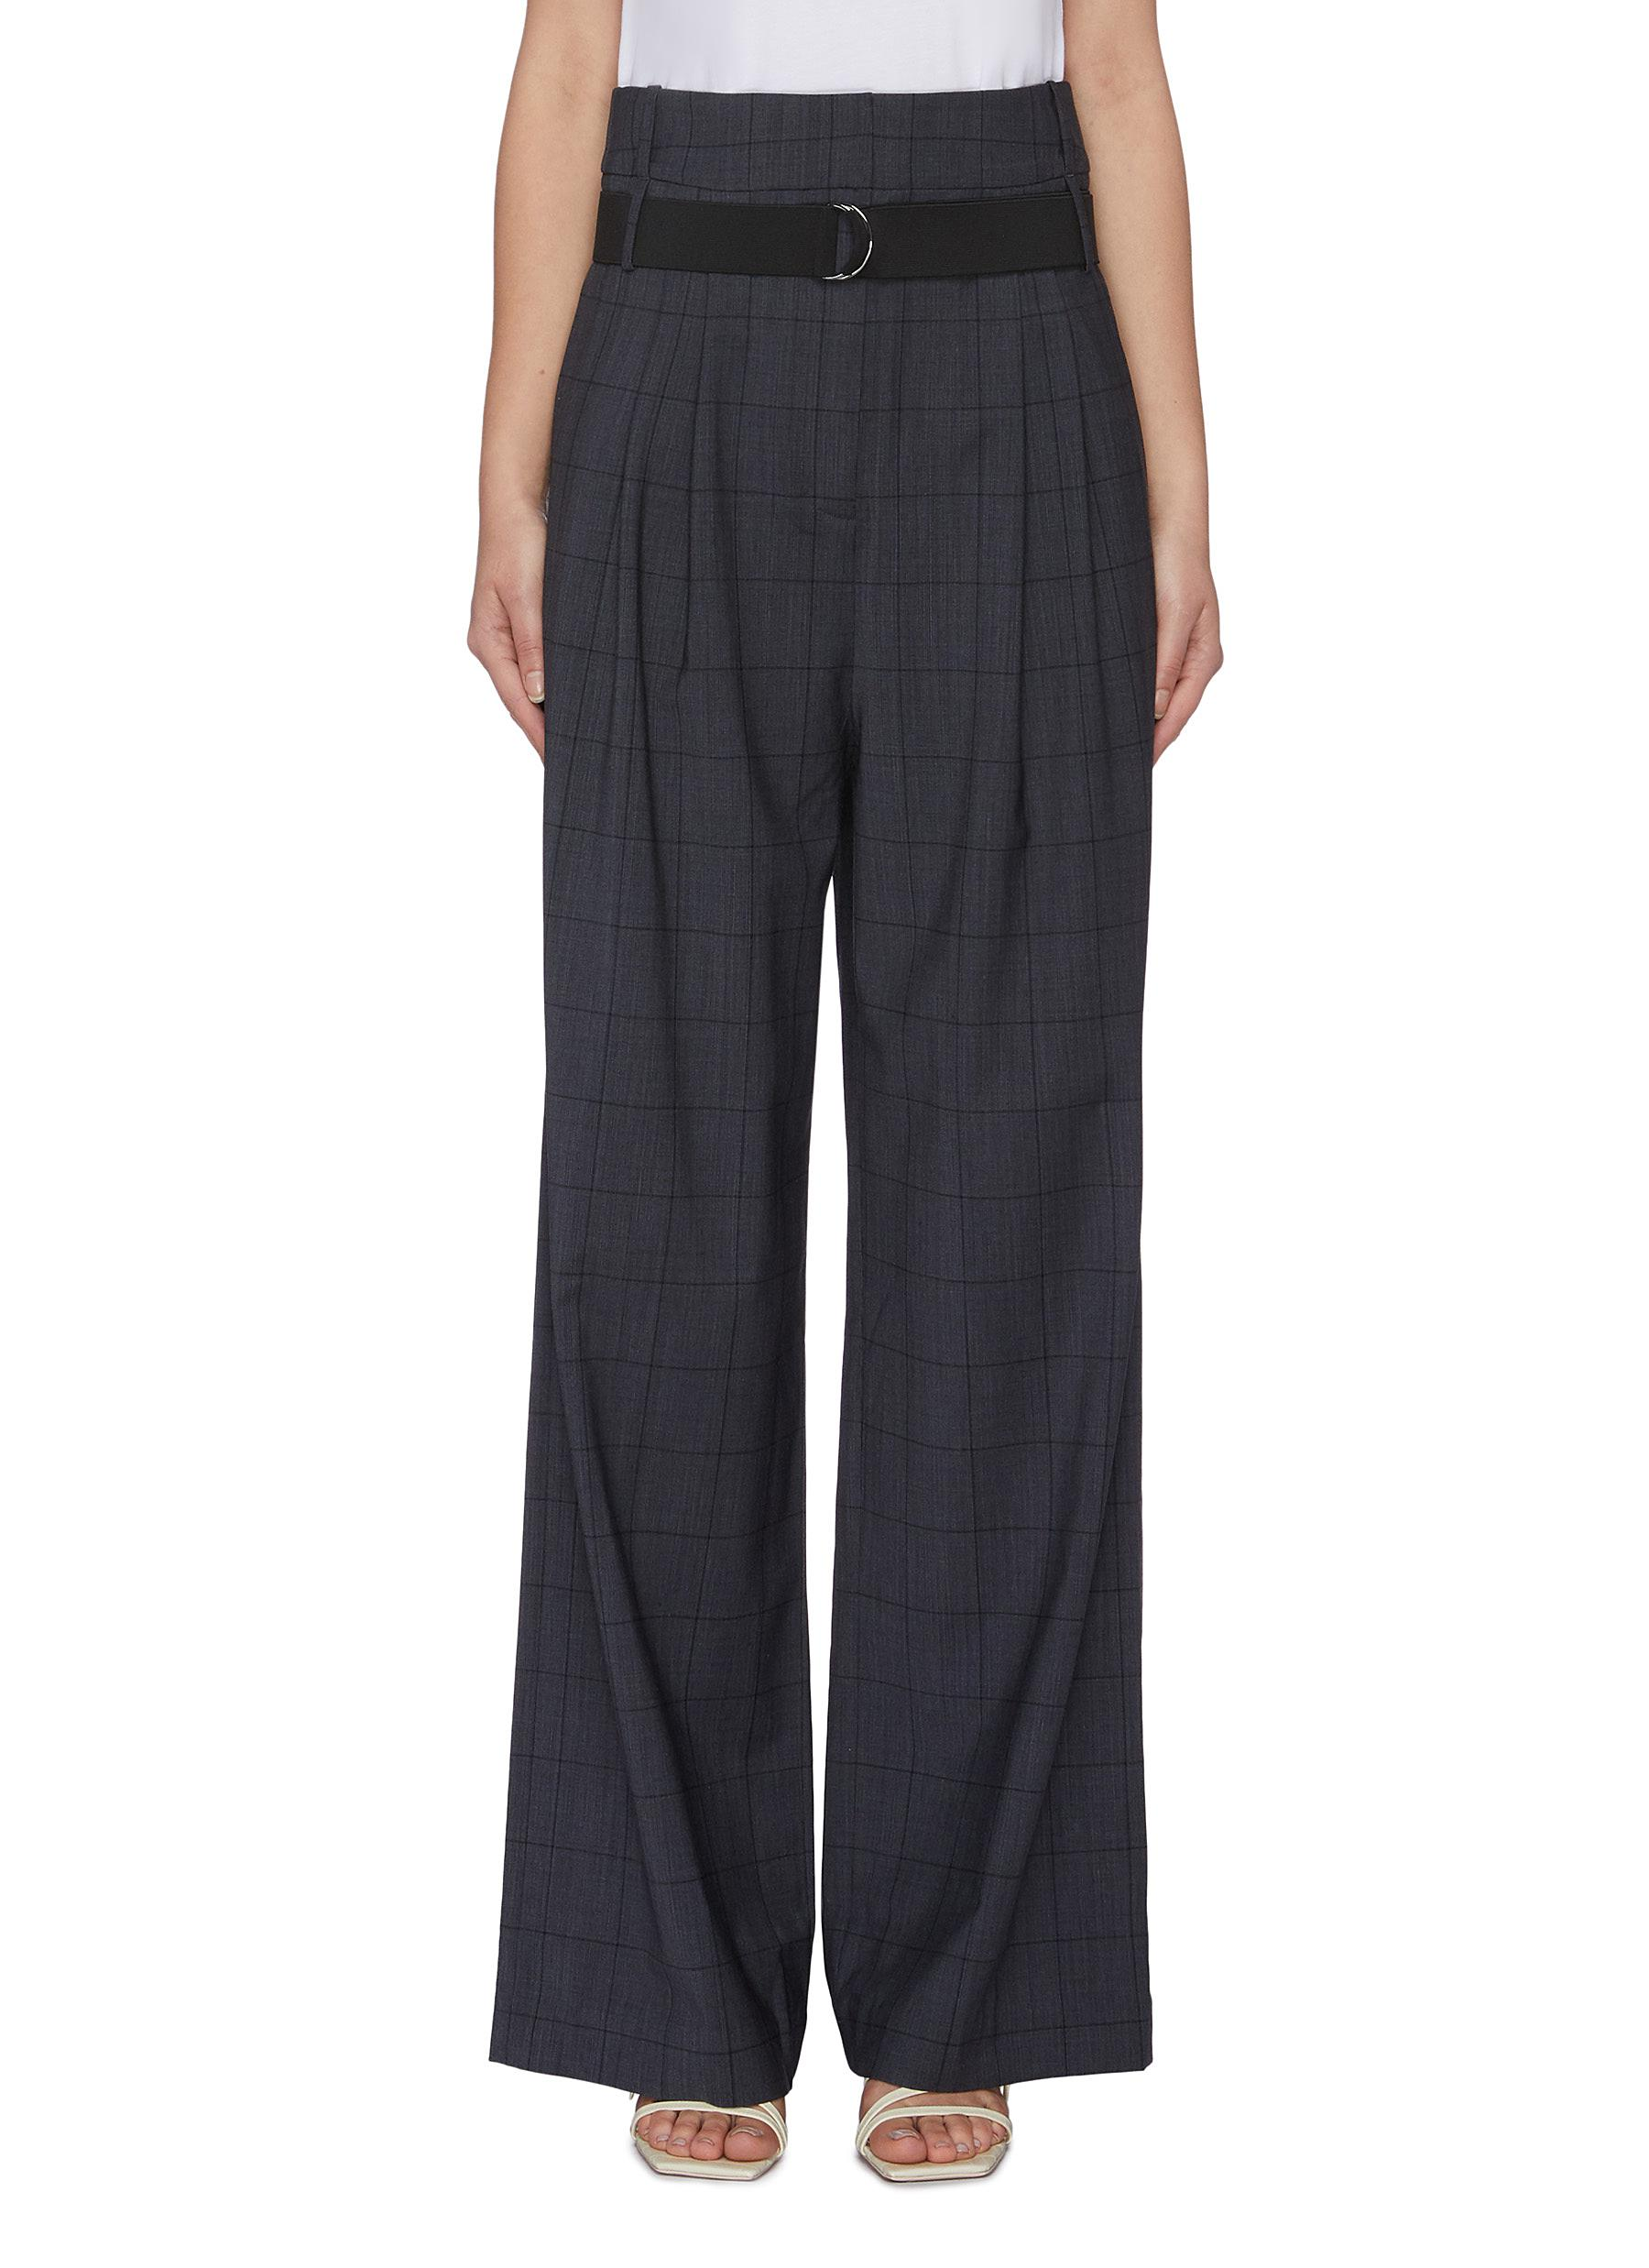 Menswear belted windowpane check wool blend pants by Tibi